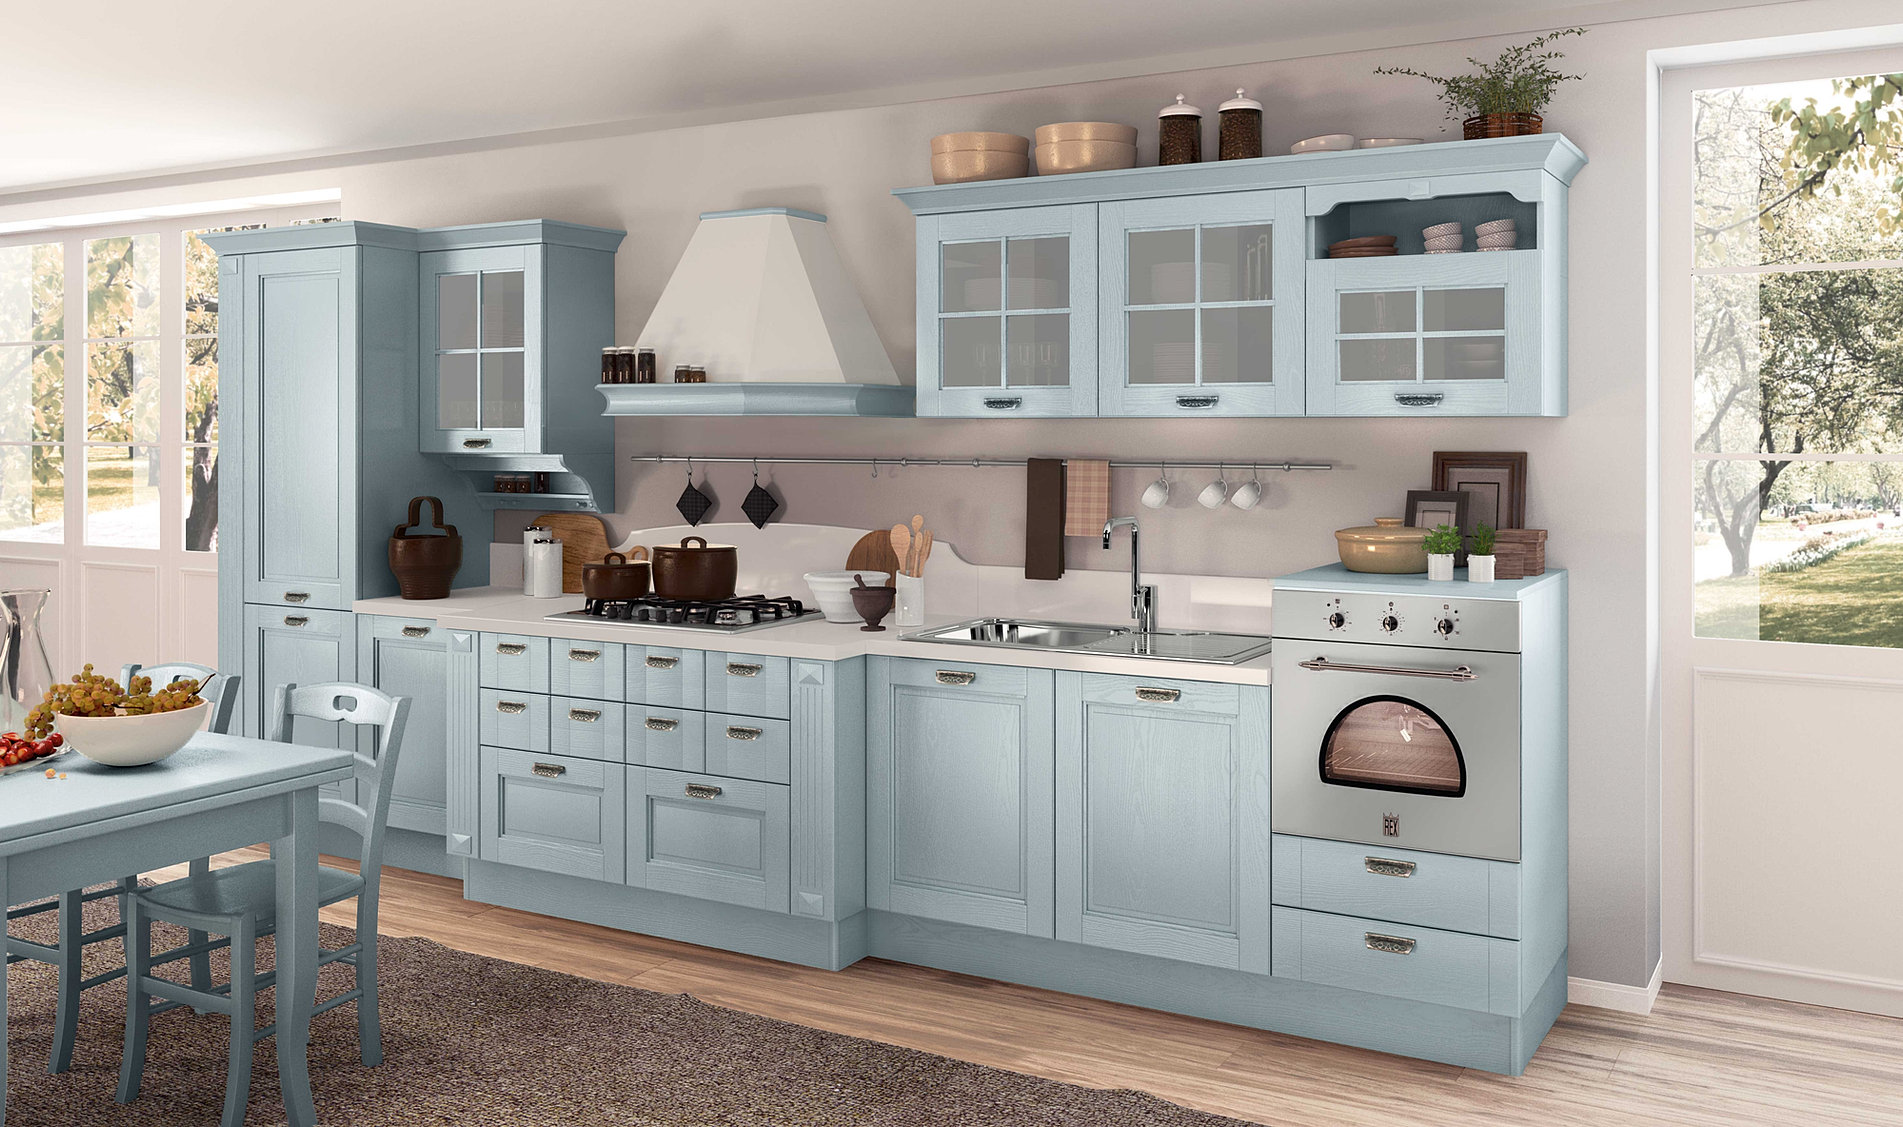 Cucina Giorgia. Gallery With Cucina Giorgia. Stunning With Cucina ...